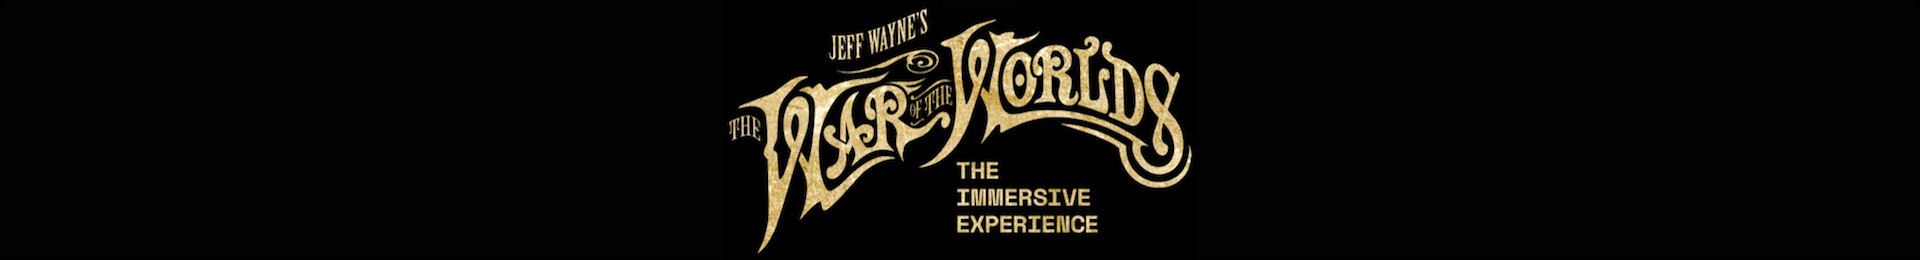 The War Of The Worlds banner image